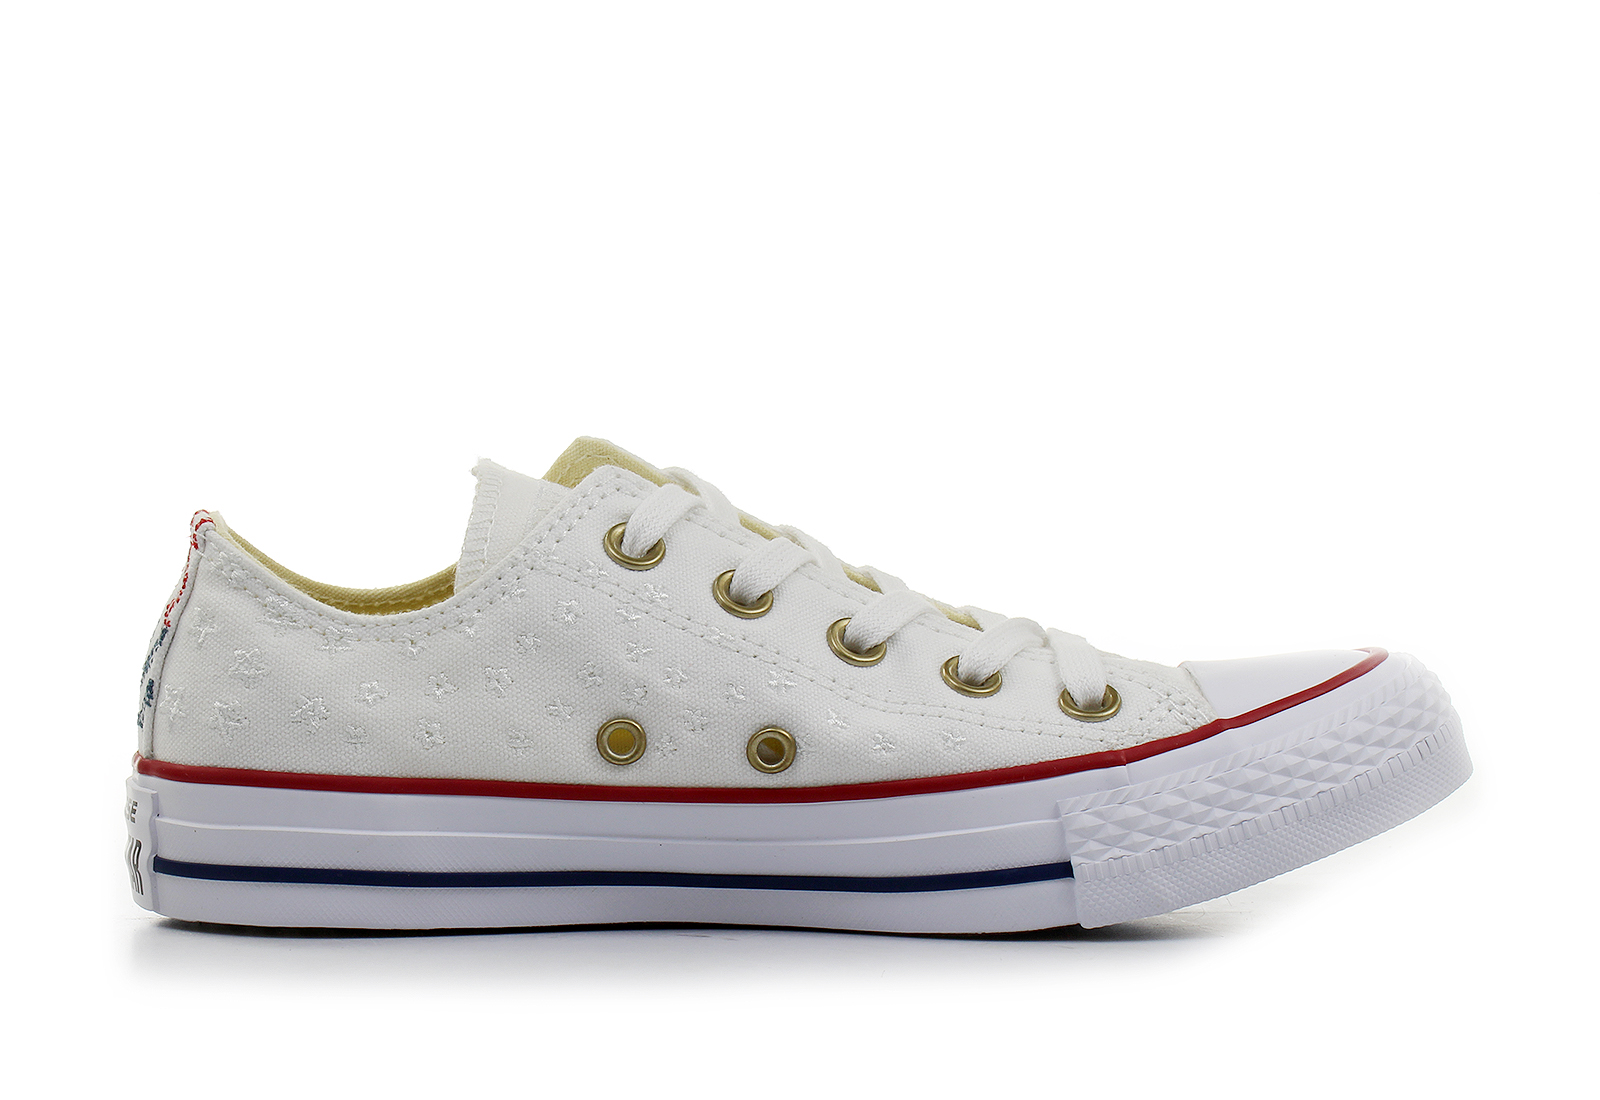 3e17990a6ba232 Converse Sneakers - Chuck Taylor All Star Specialty Ox - 555882C ...